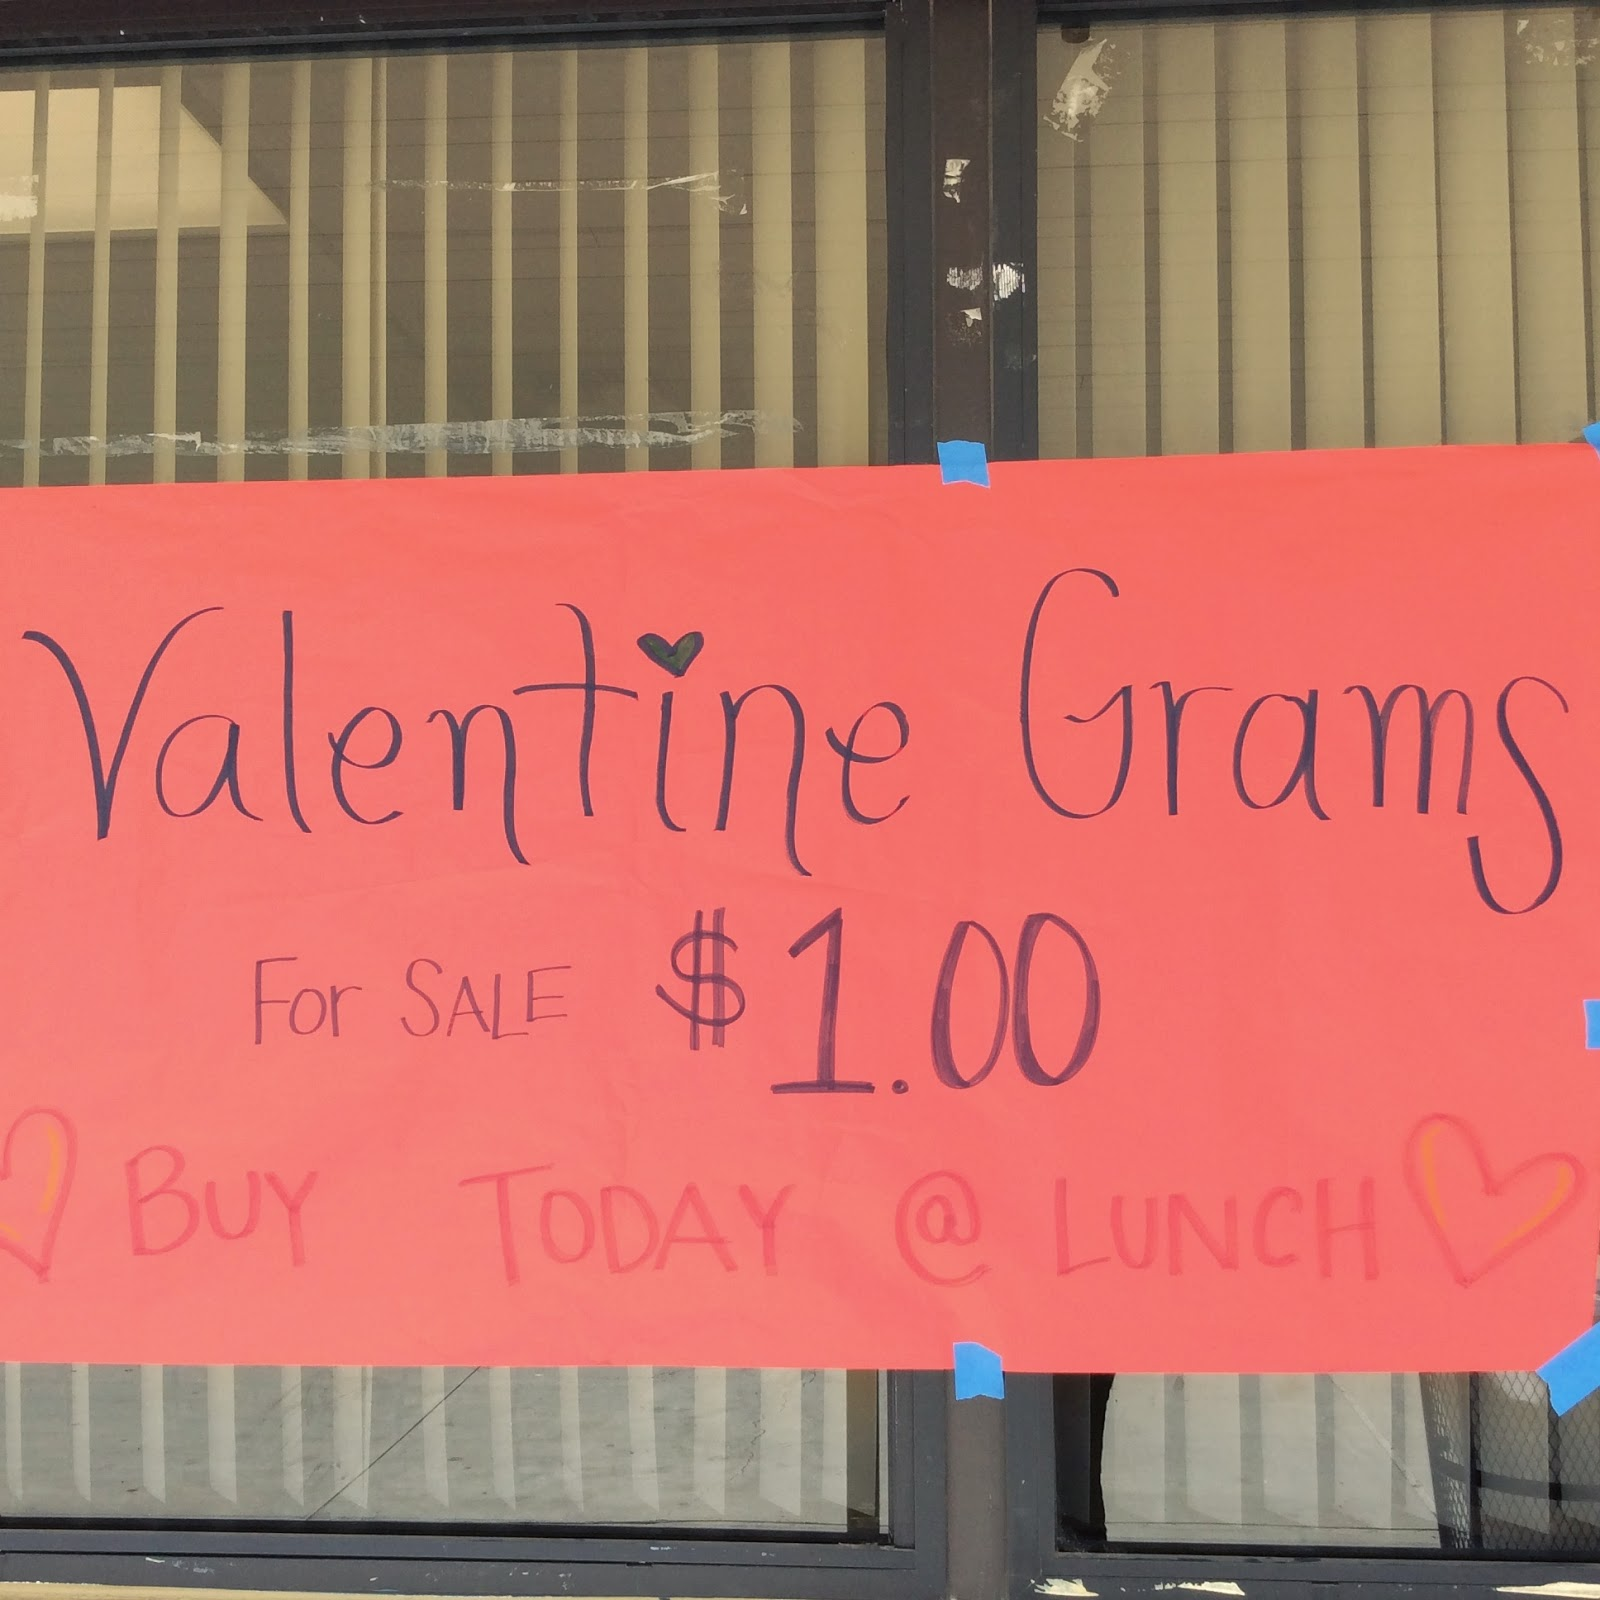 Here At Haydock This Week, WEB Leaders Will Be Selling Valentine Grams  During Lunch For Only $1! Each Valentine Gram Includes A Colorful Card And  Smencil (a ...